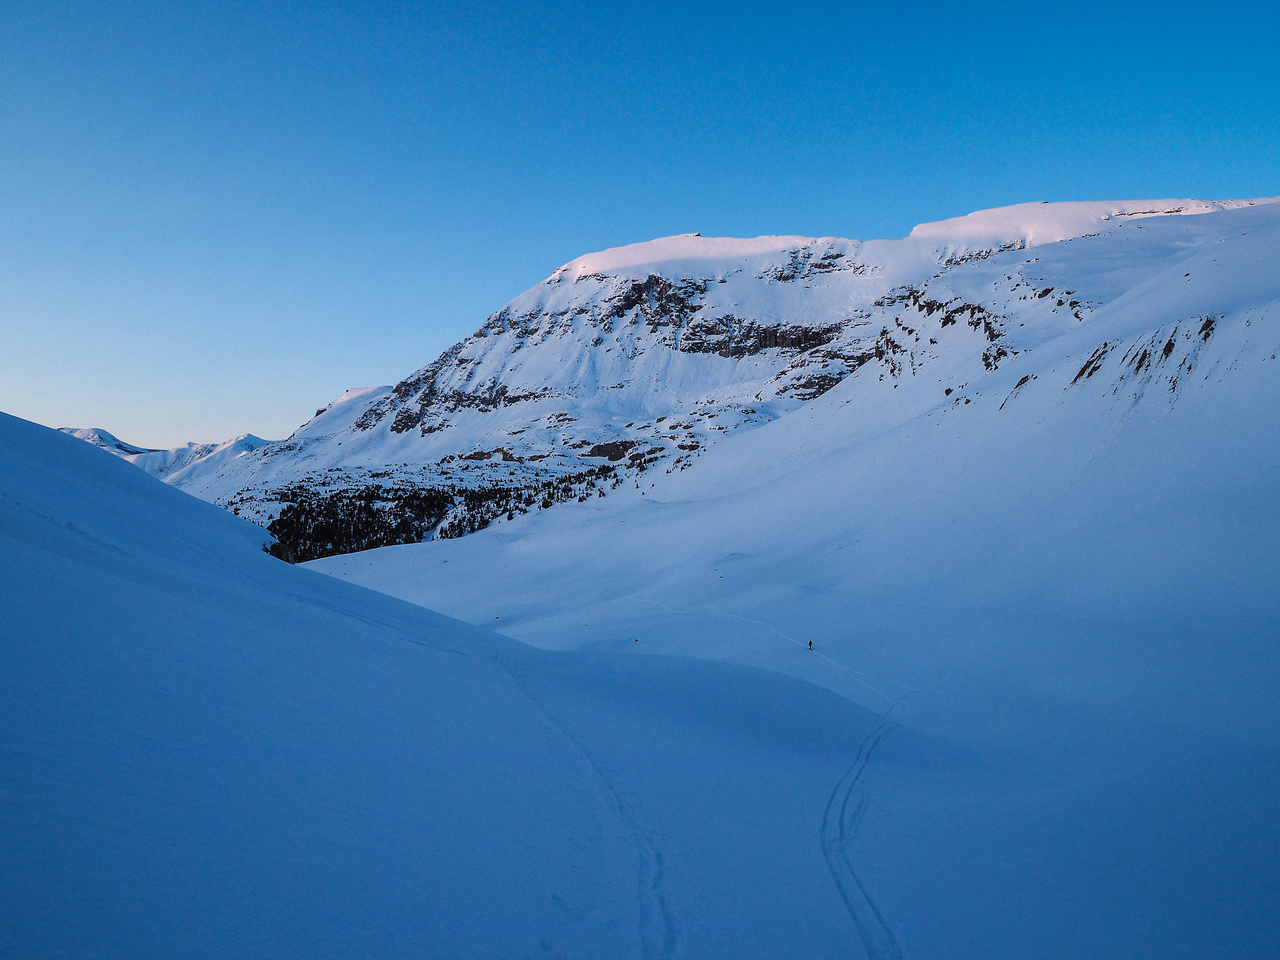 The sun starts setting as we work our way up the steep headwall below the hut.